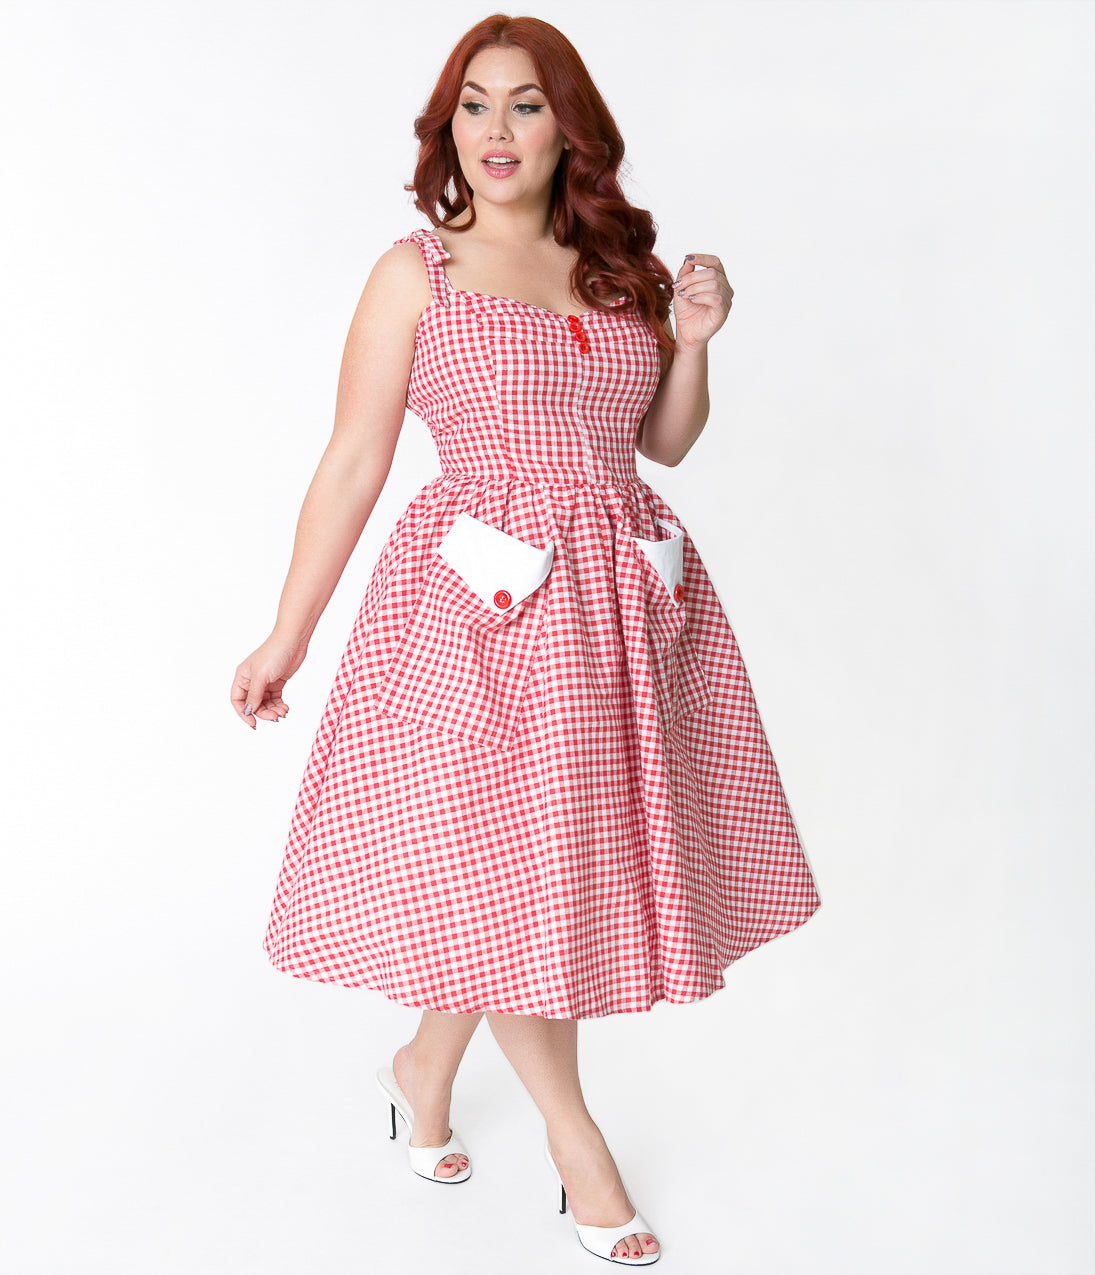 Pin Up Dresses | Pin Up Clothing Plus Size Red  White Gingham Retro Picnic Sundress $58.00 AT vintagedancer.com